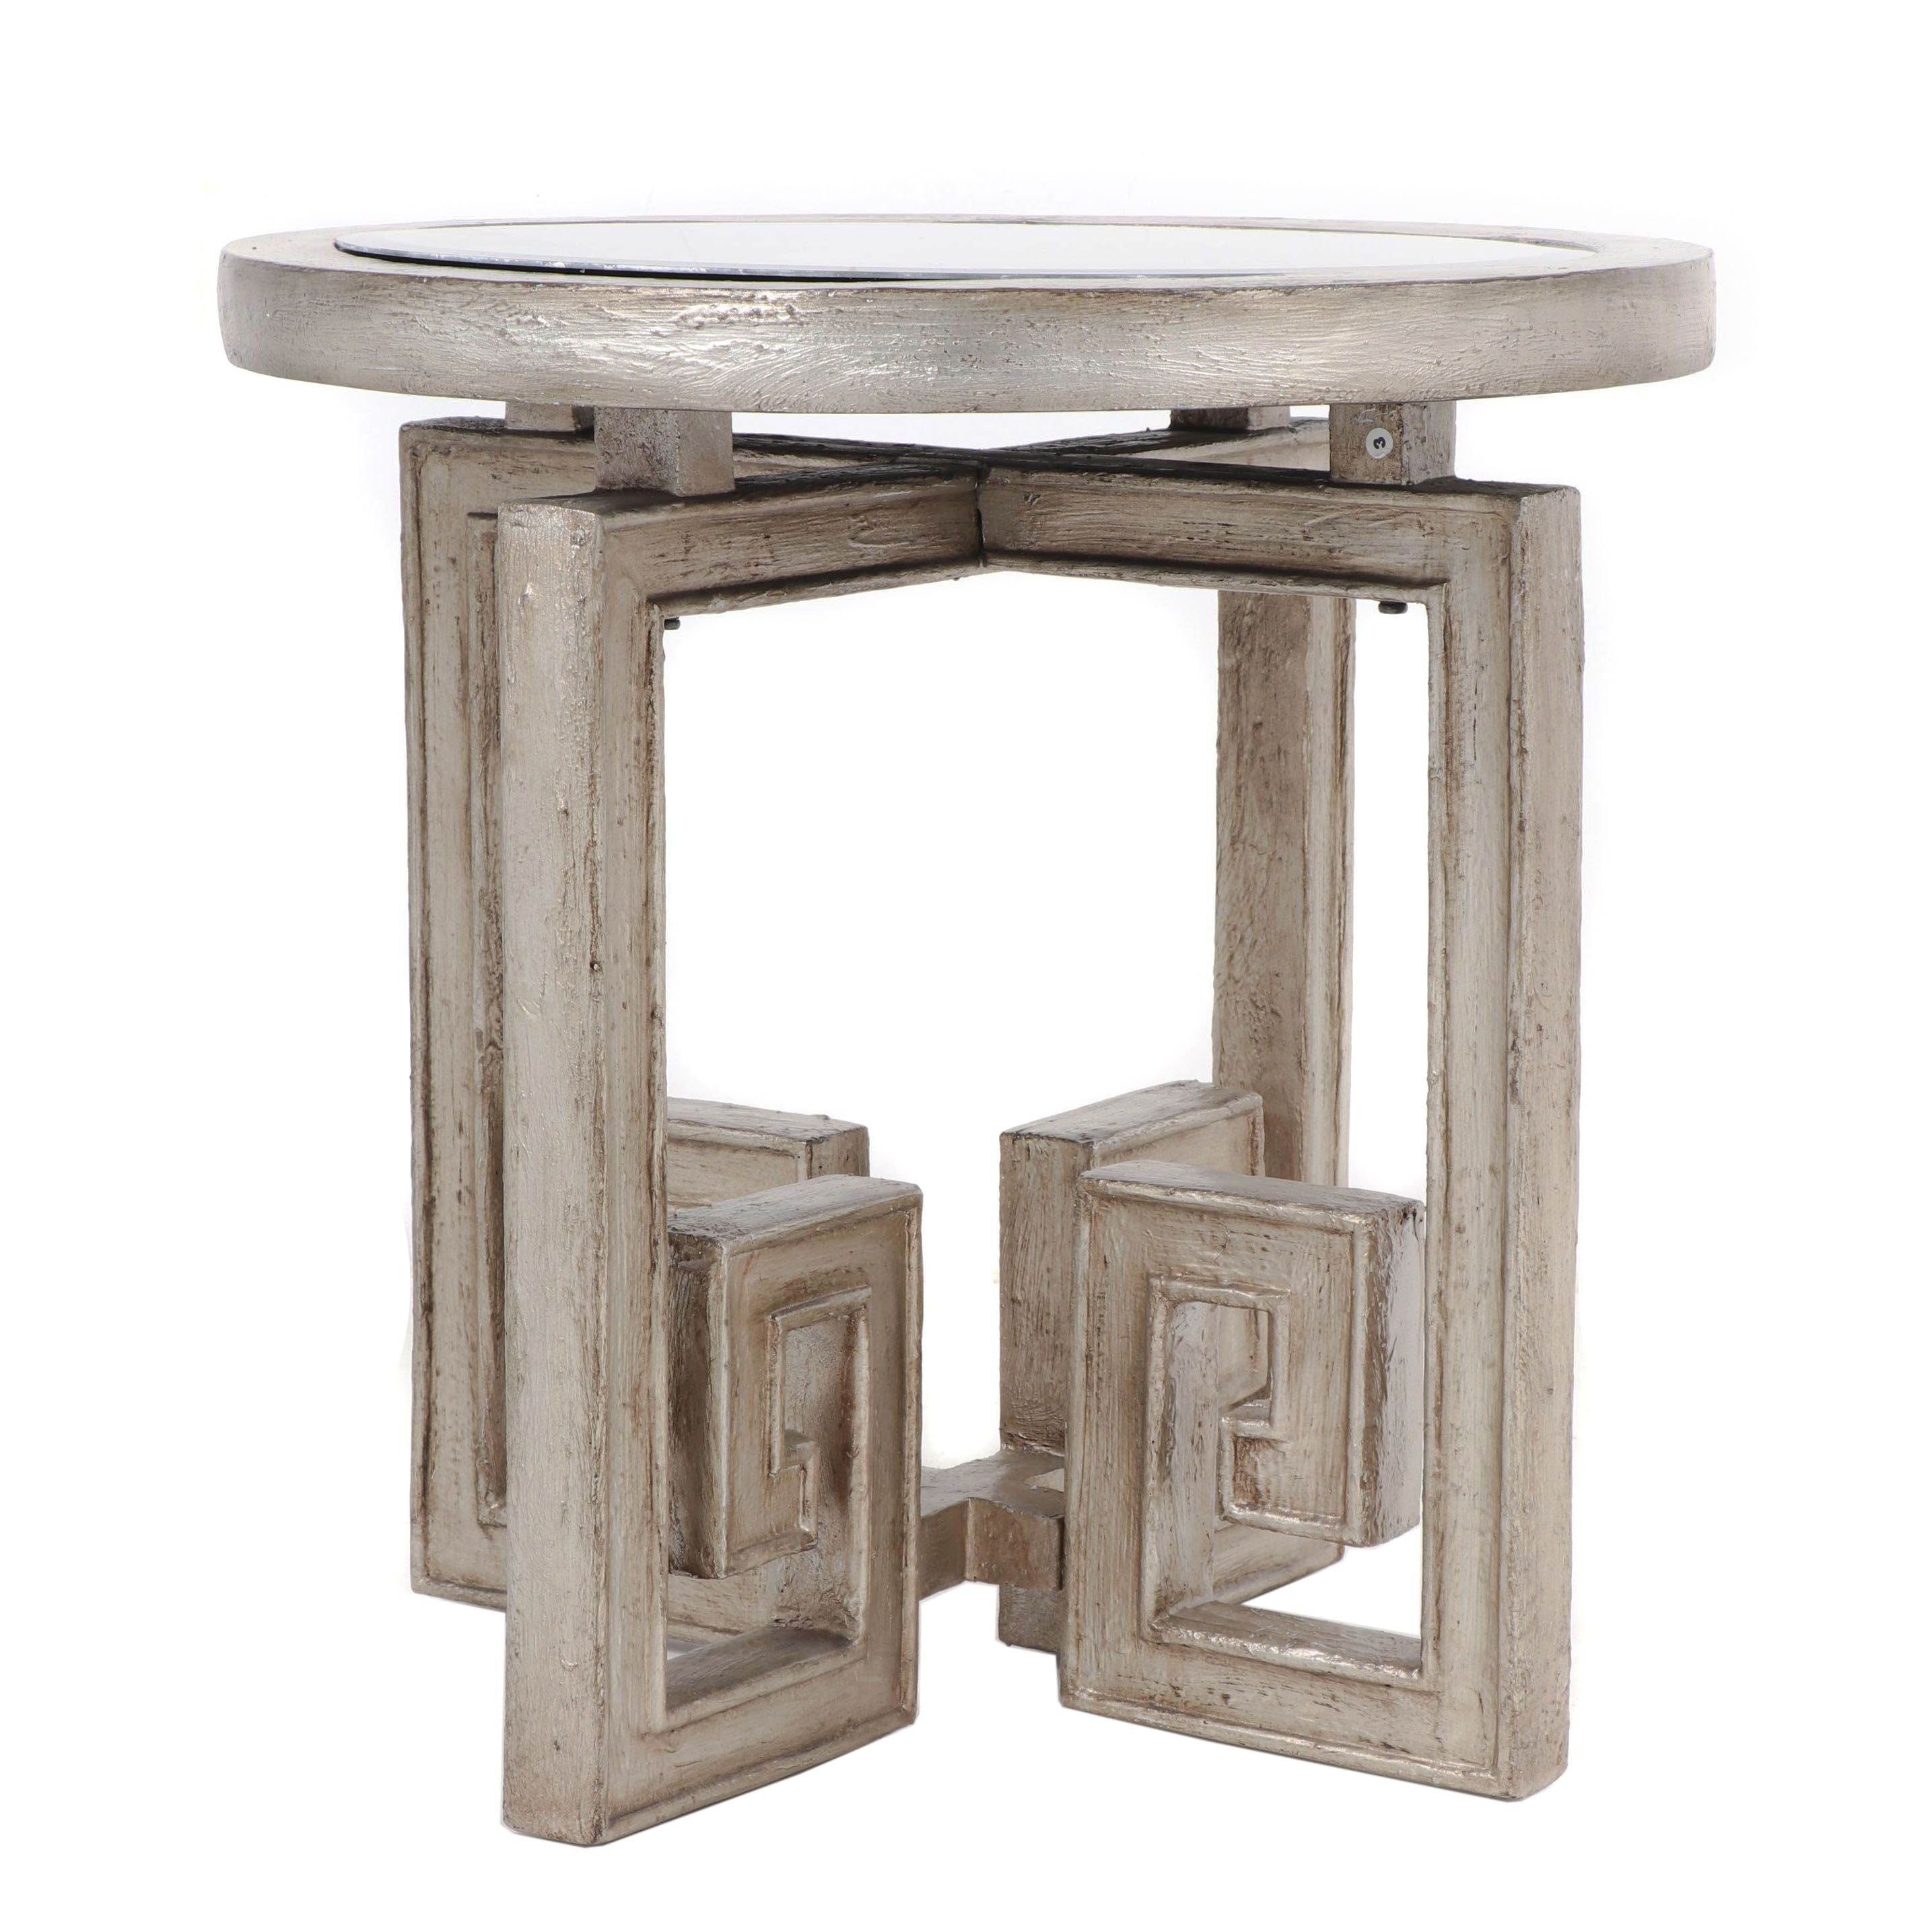 Contemporary Engineered Wood Side Table with Mirrored Top